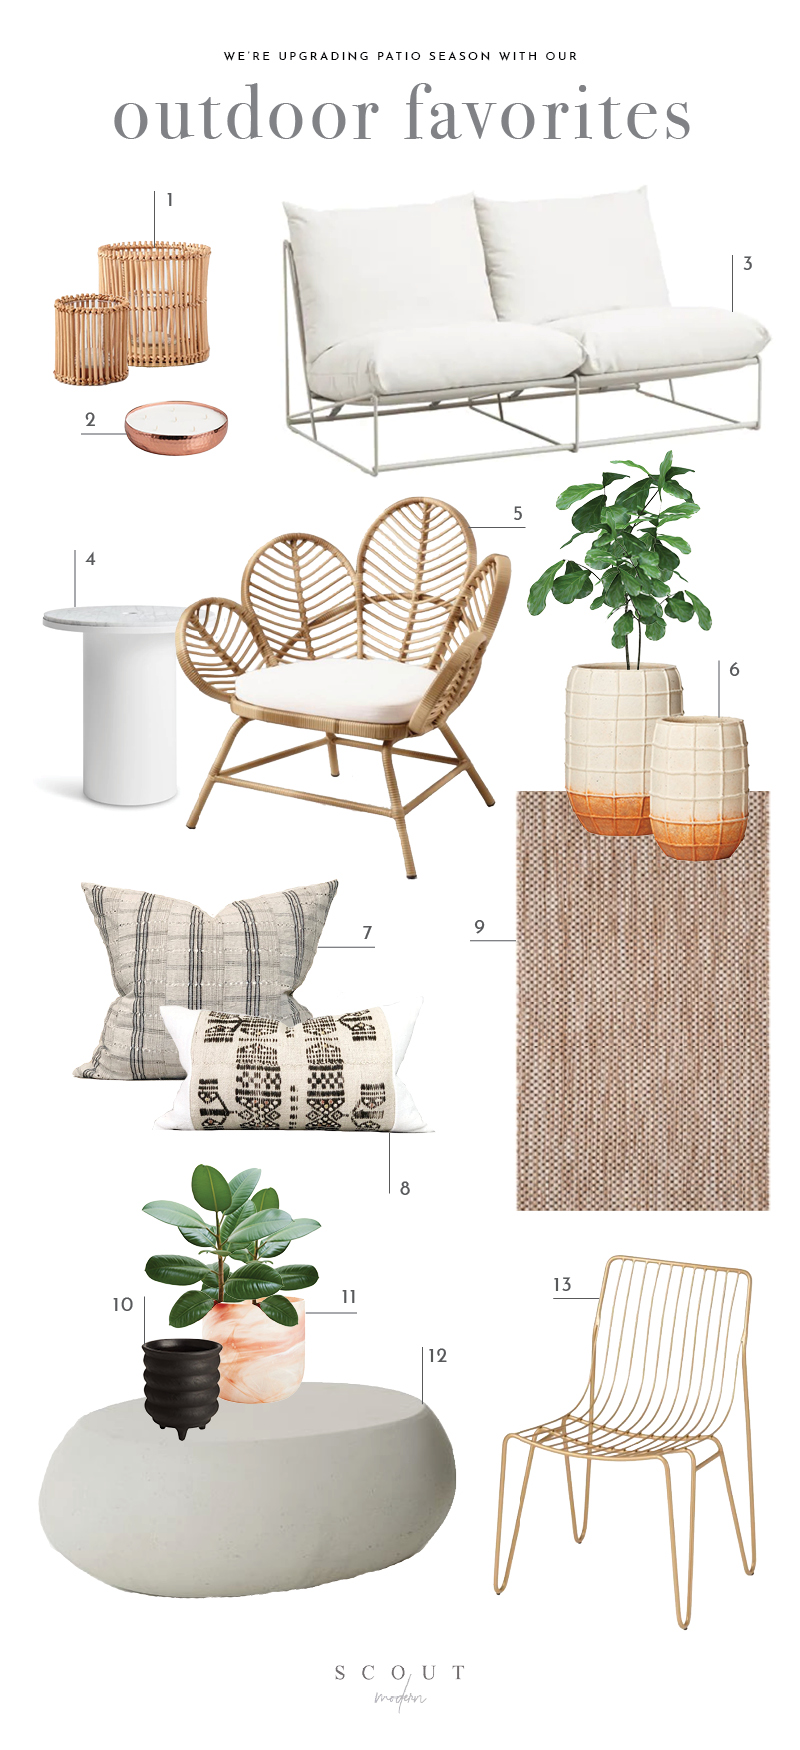 1.  Rattan Candle Holders  | 2.  Hammered Copper Candle  | 3.  Modern Outdoor/Indoor Loveseat  | 4.  Marble Pedestal Table  | 5.  Peacock Chair  | 6.  Ombre Planters  | 7.  Vintage Striped Pillow  | 8.  Fulani Pillow  | 9.  Outdoor Rug  | 10.  Round Black Planter  | 11.  Nile Glass Planter  | 12.  Pebble Cement Coffee Table  | 13.  Gold Wire Chair